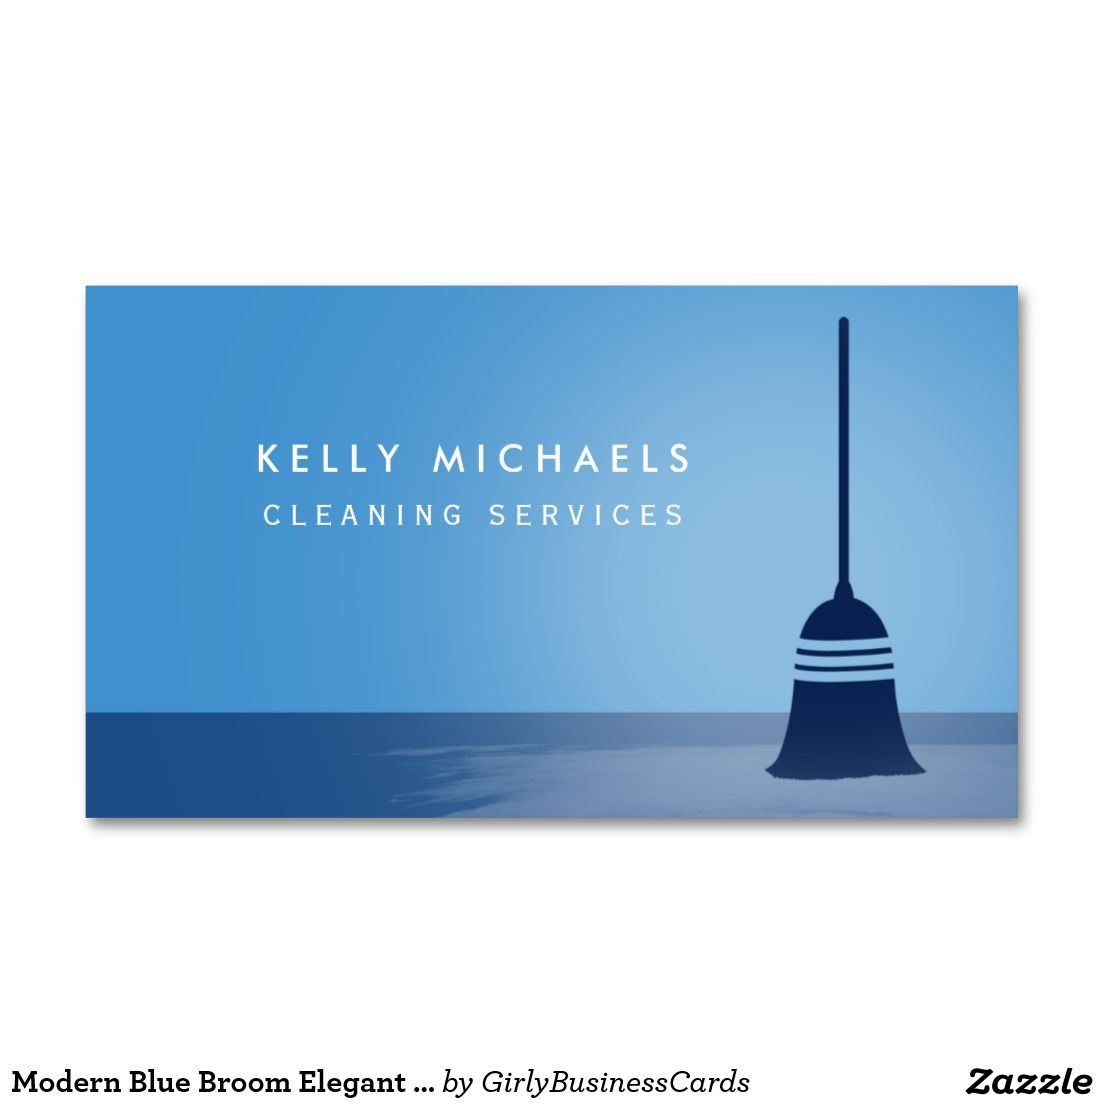 Modern Blue Broom Elegant Cleaning Services Business Card | Cleaning ...